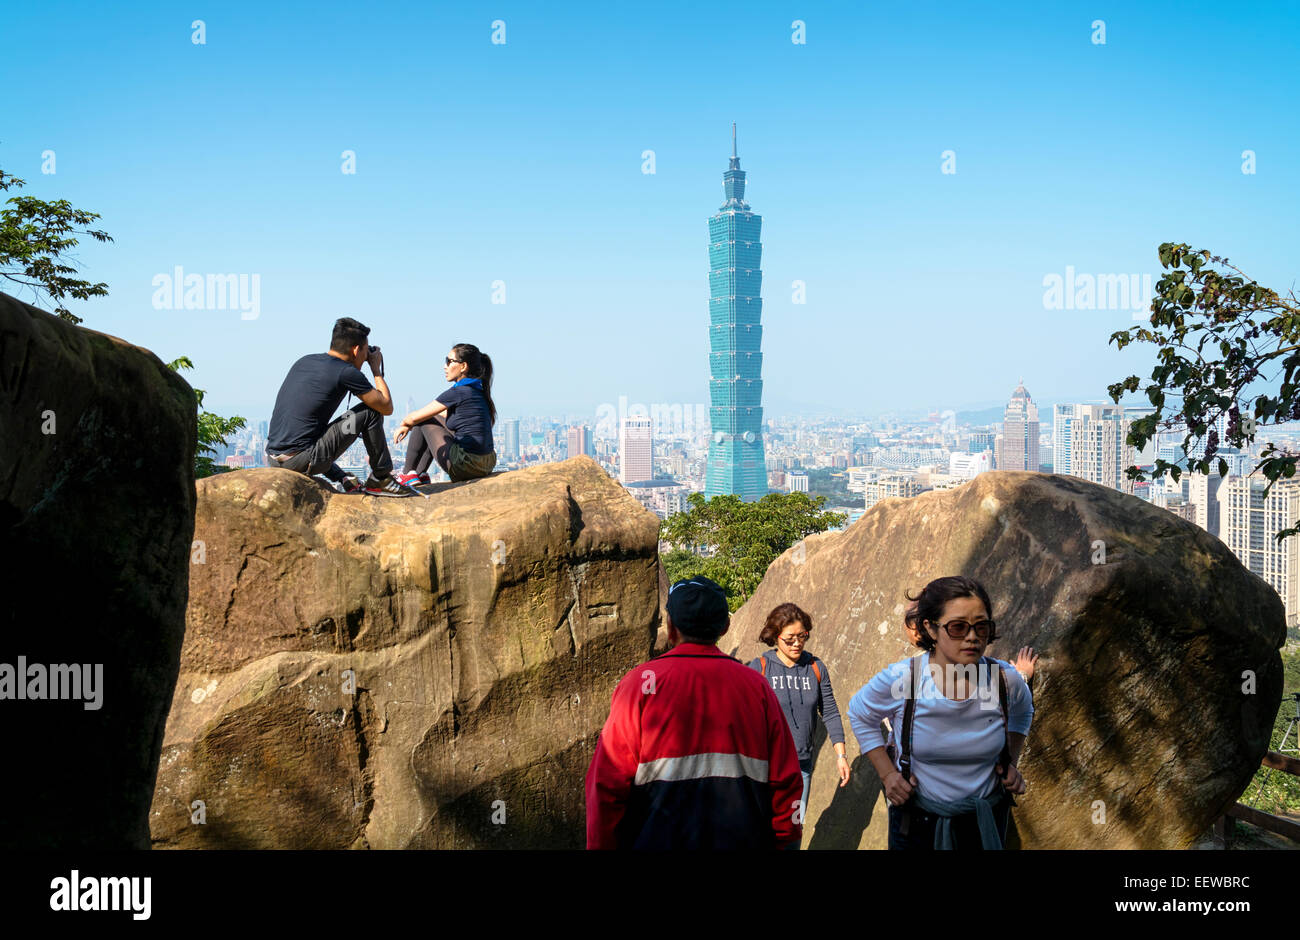 Taipei, Taiwan - Dec 30, 2014: Tourists at the Elephant Mt. in Taipei. Tourists are hiking at the  Nangang District - Stock Image